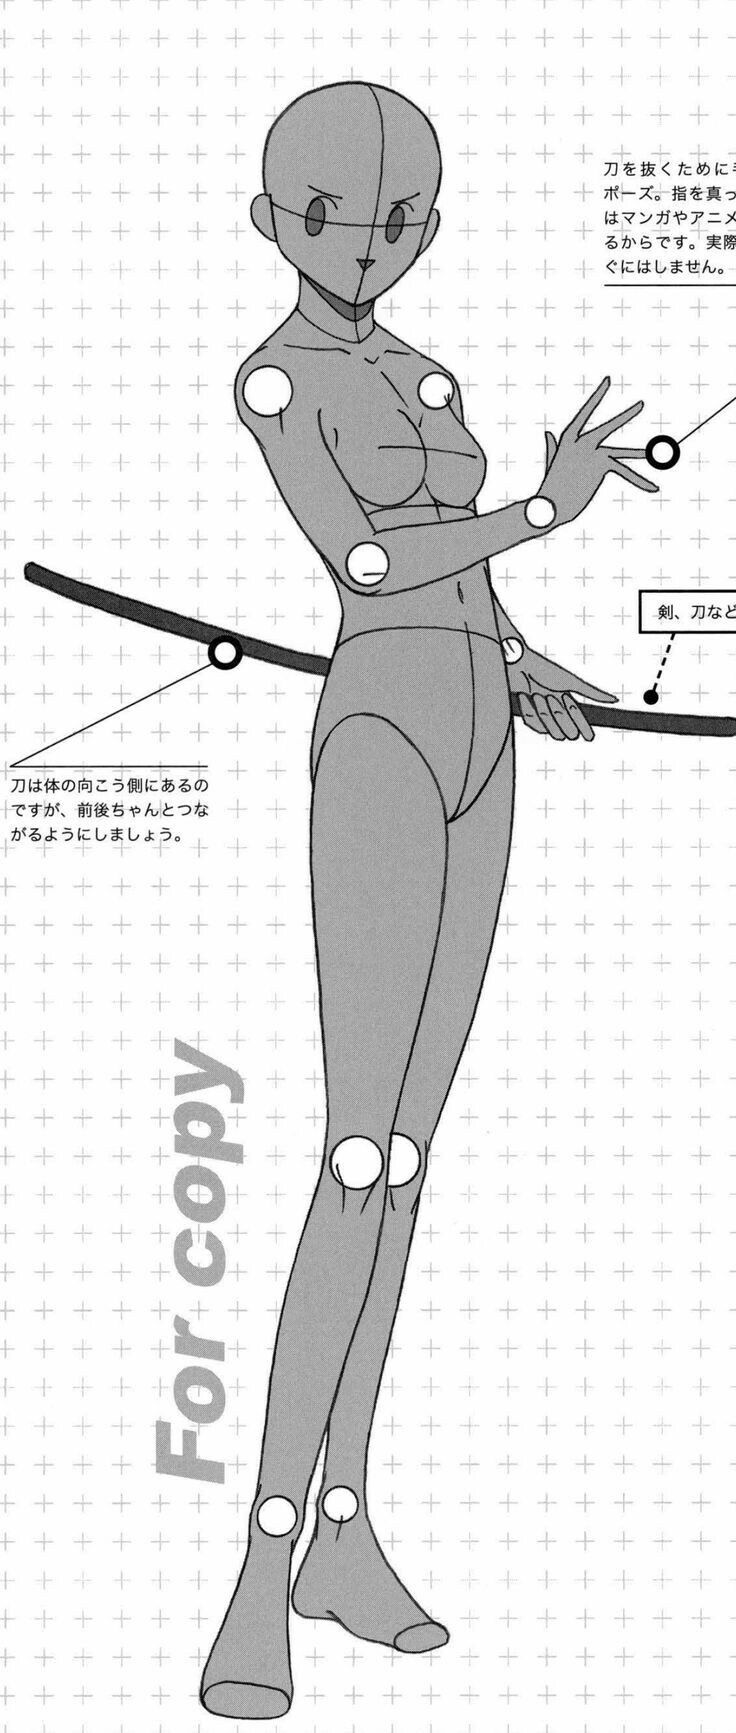 Female body, fighting stance, text, girl, katana, sword; How to Draw Manga/Anime